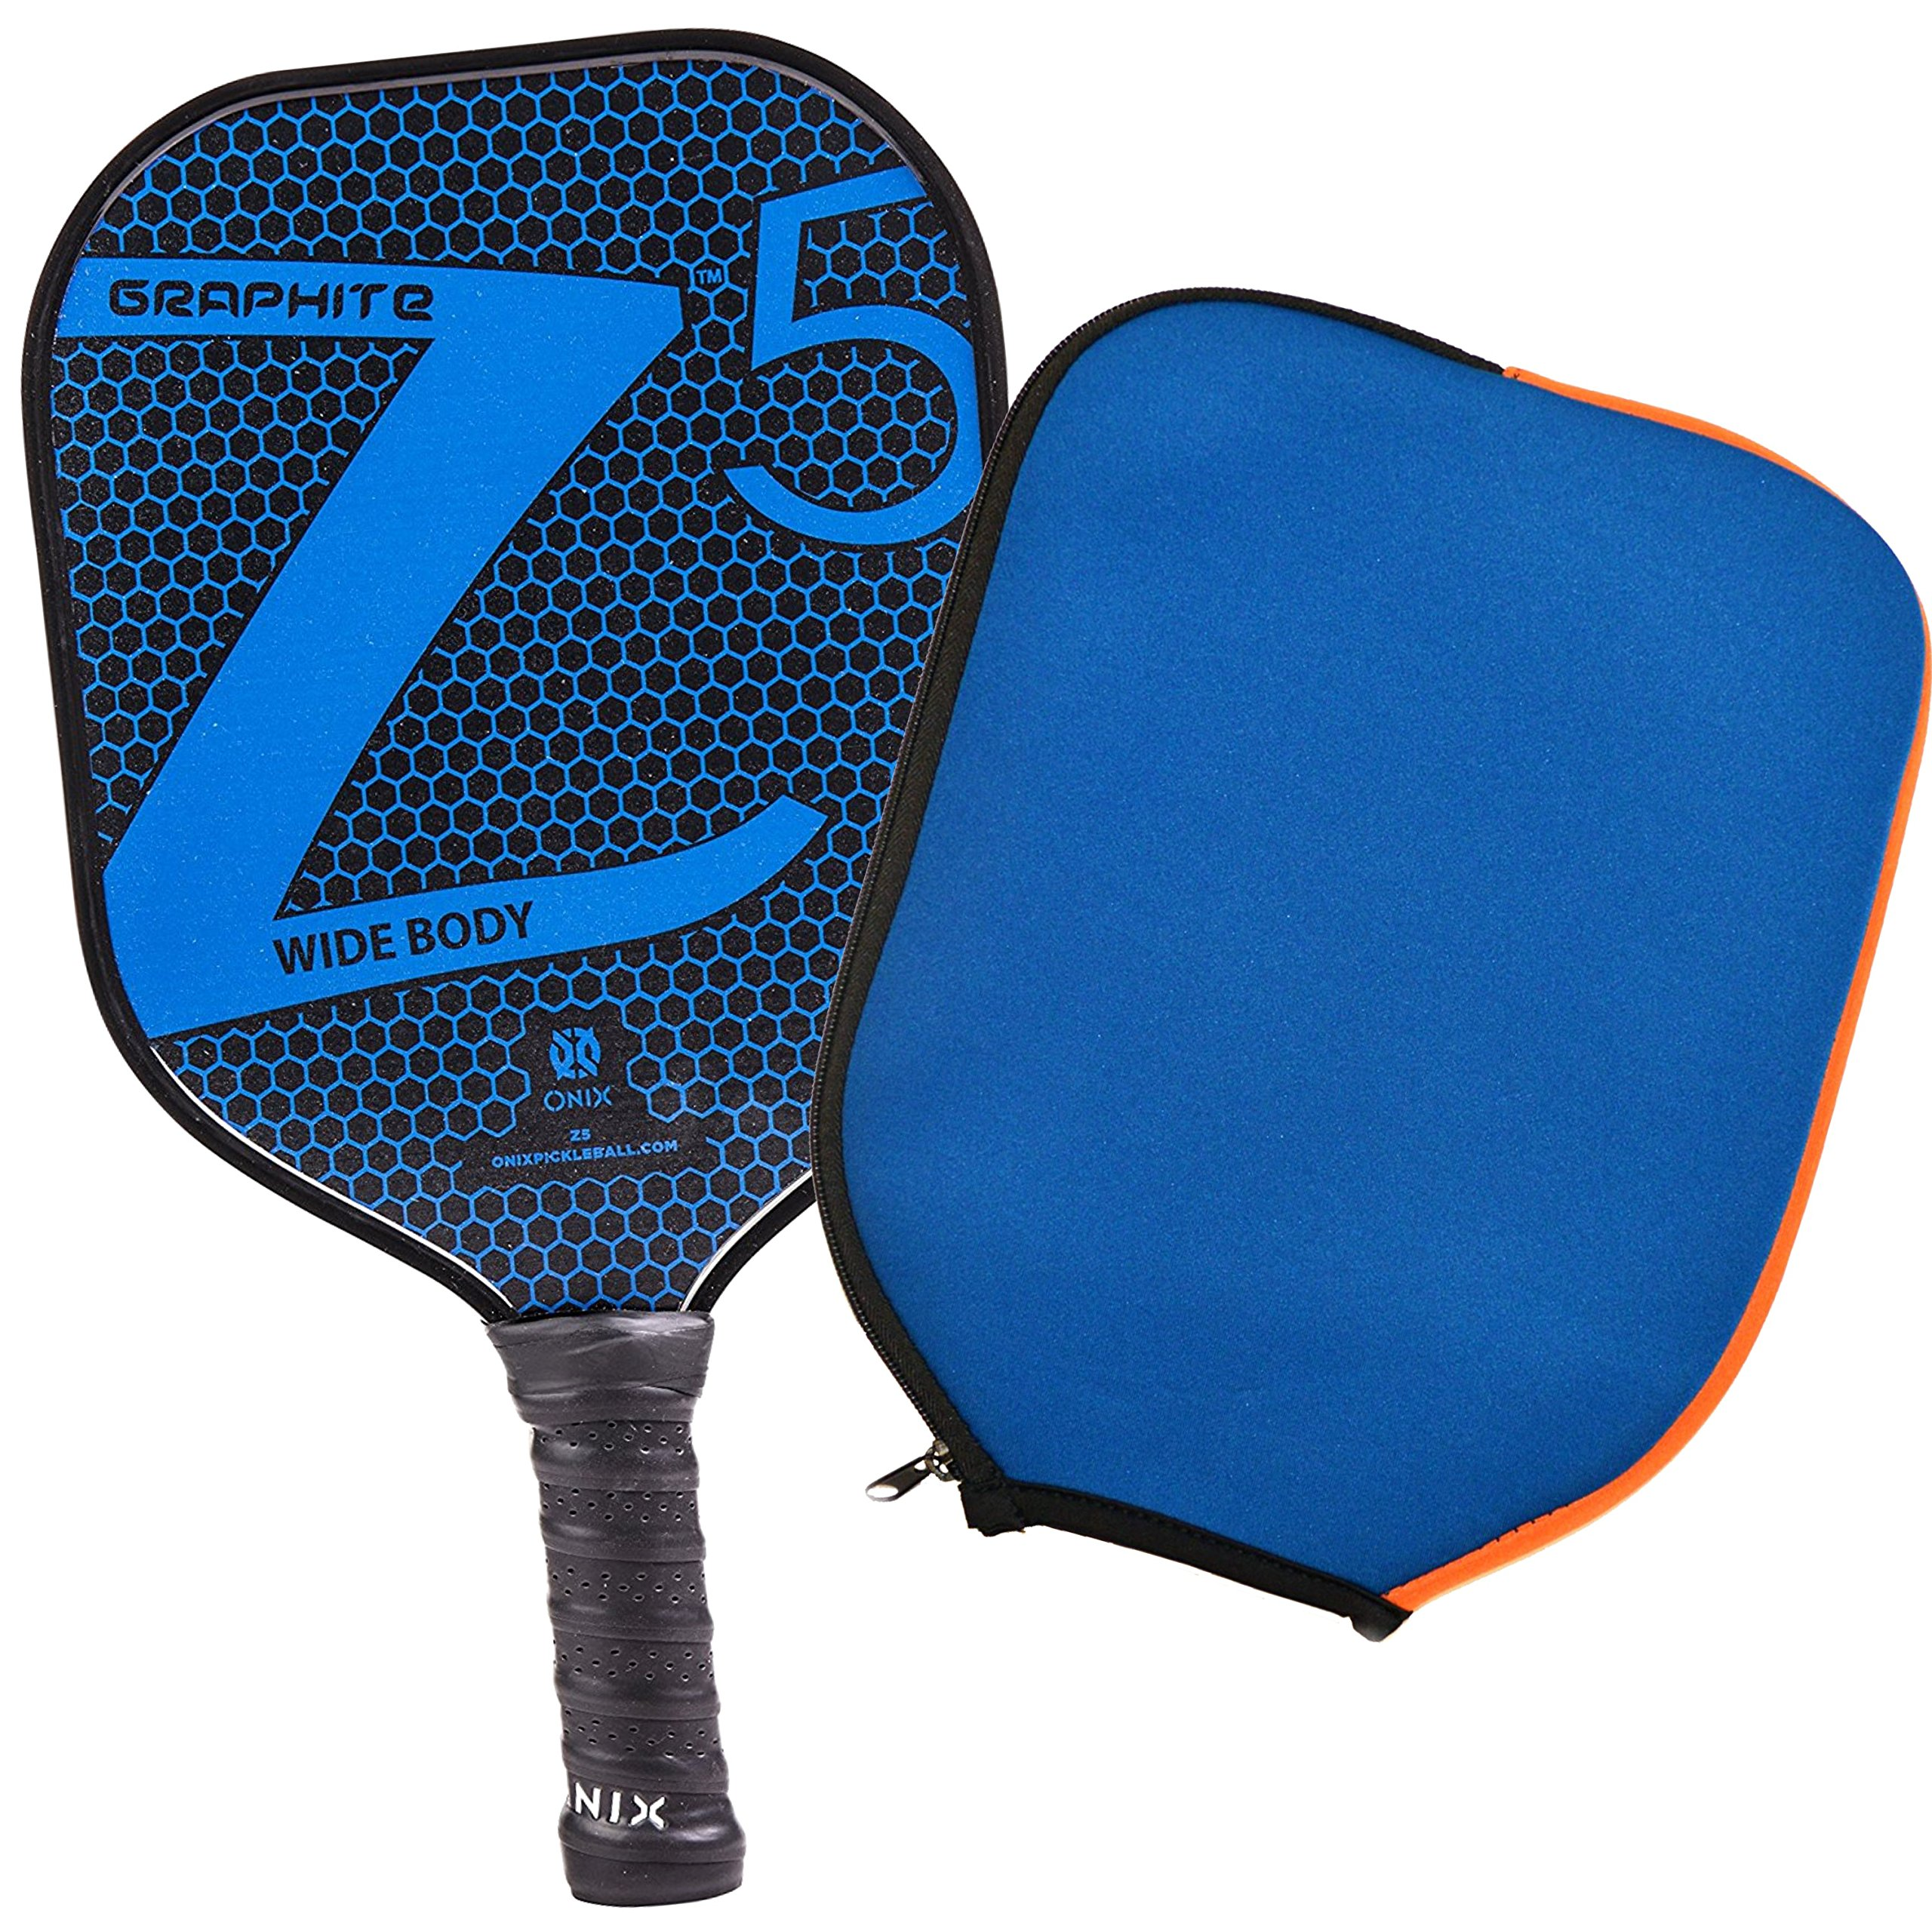 Onix Z5 Graphite Pickleball Paddle and Paddle Cover -69DY